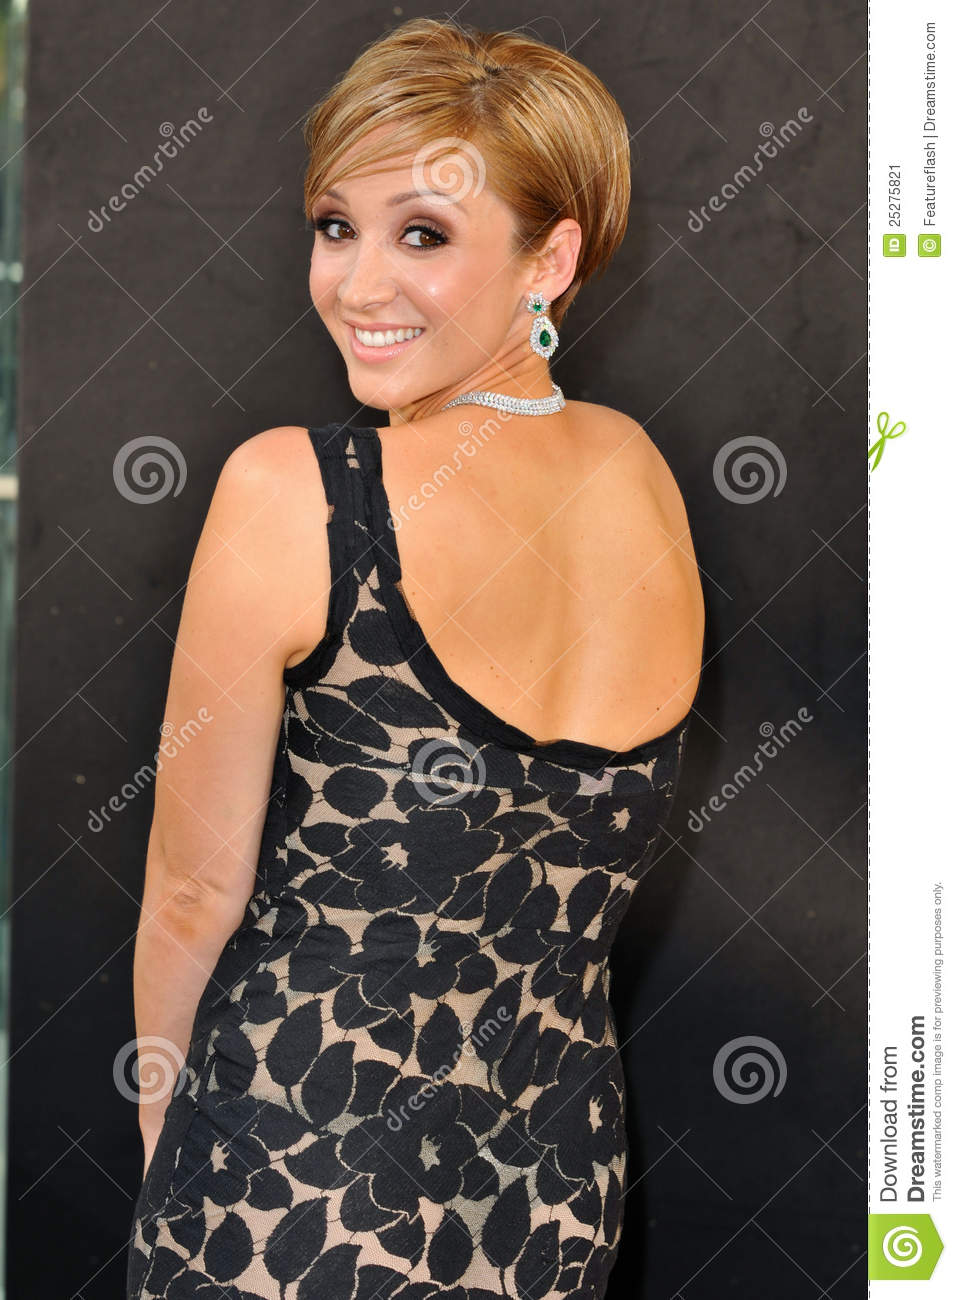 Images Lucy-Jo Hudson nudes (25 foto and video), Tits, Is a cute, Boobs, lingerie 2015